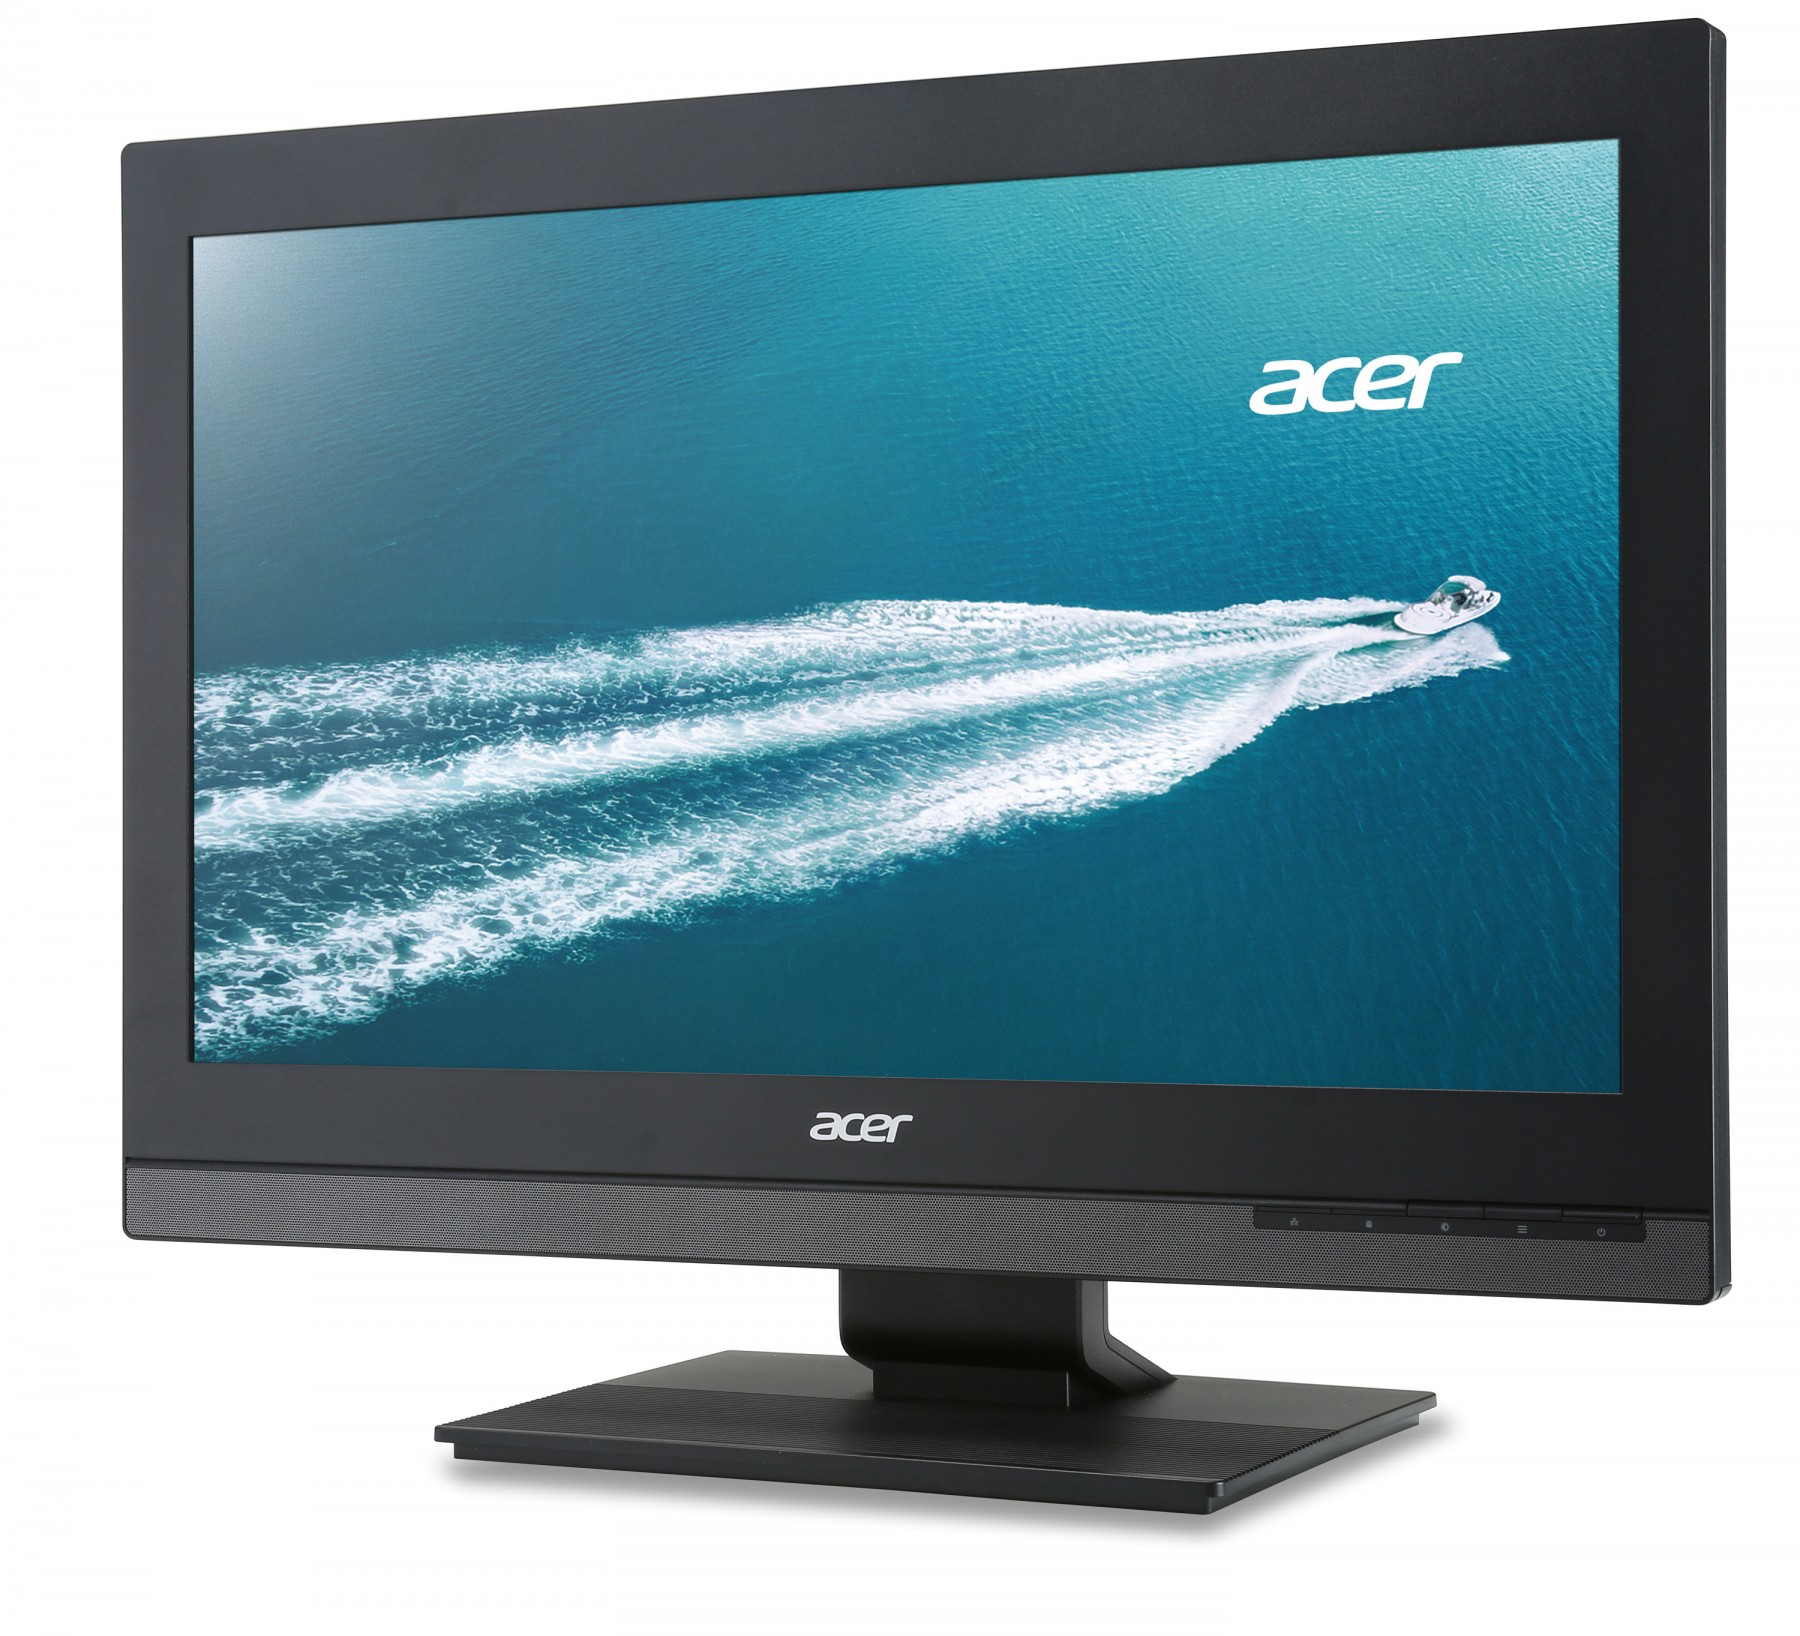 ACER-VER-Z4810G-AIO-I5-500GB-Acer Veriton Z4810G Refurbished All-in-One PC 500 HDD 8 GB RAM 23-inch Core i3 Windows 10 Professional -image